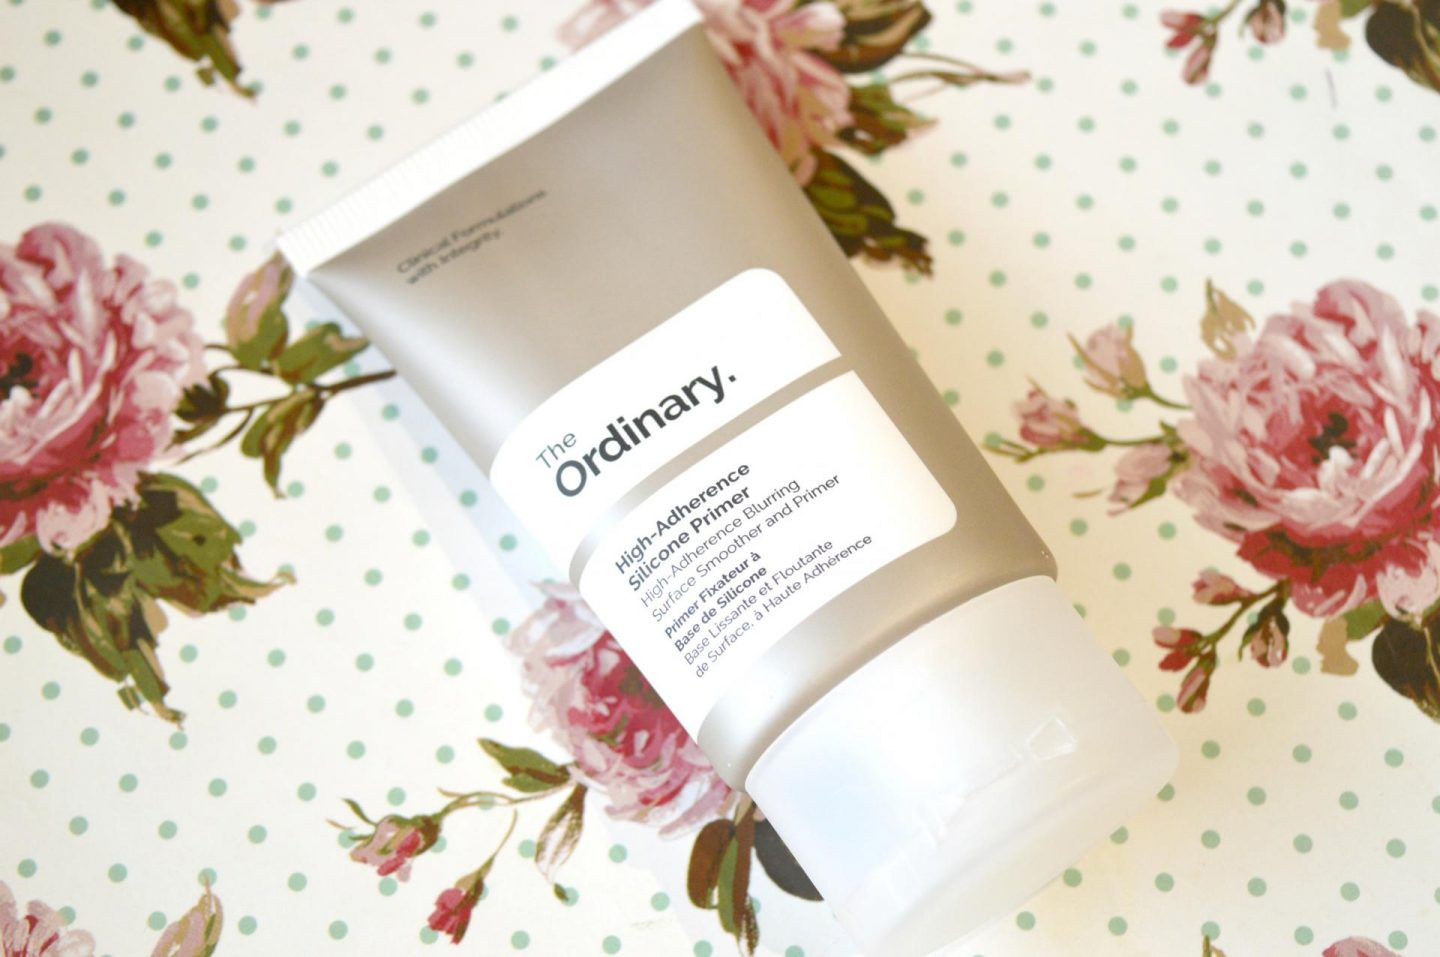 Is The Ordinary Silicone Primer Really Worth Trying?